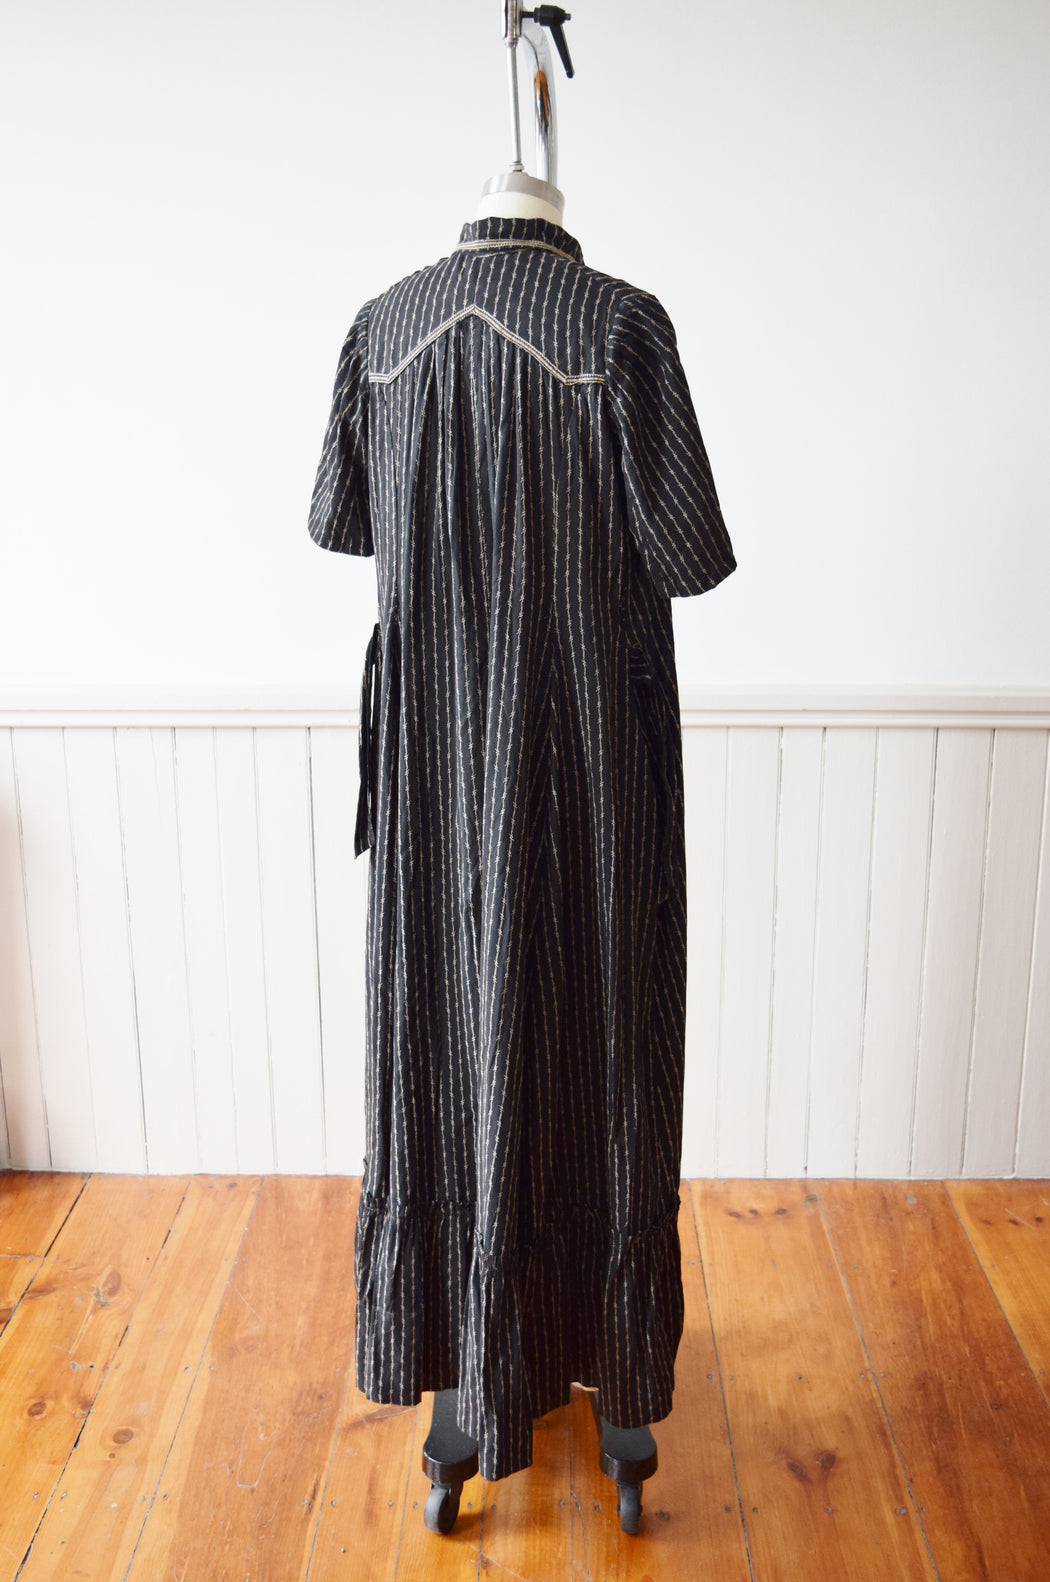 Antique Victorian Calico Wrapper Dress | S-S/M